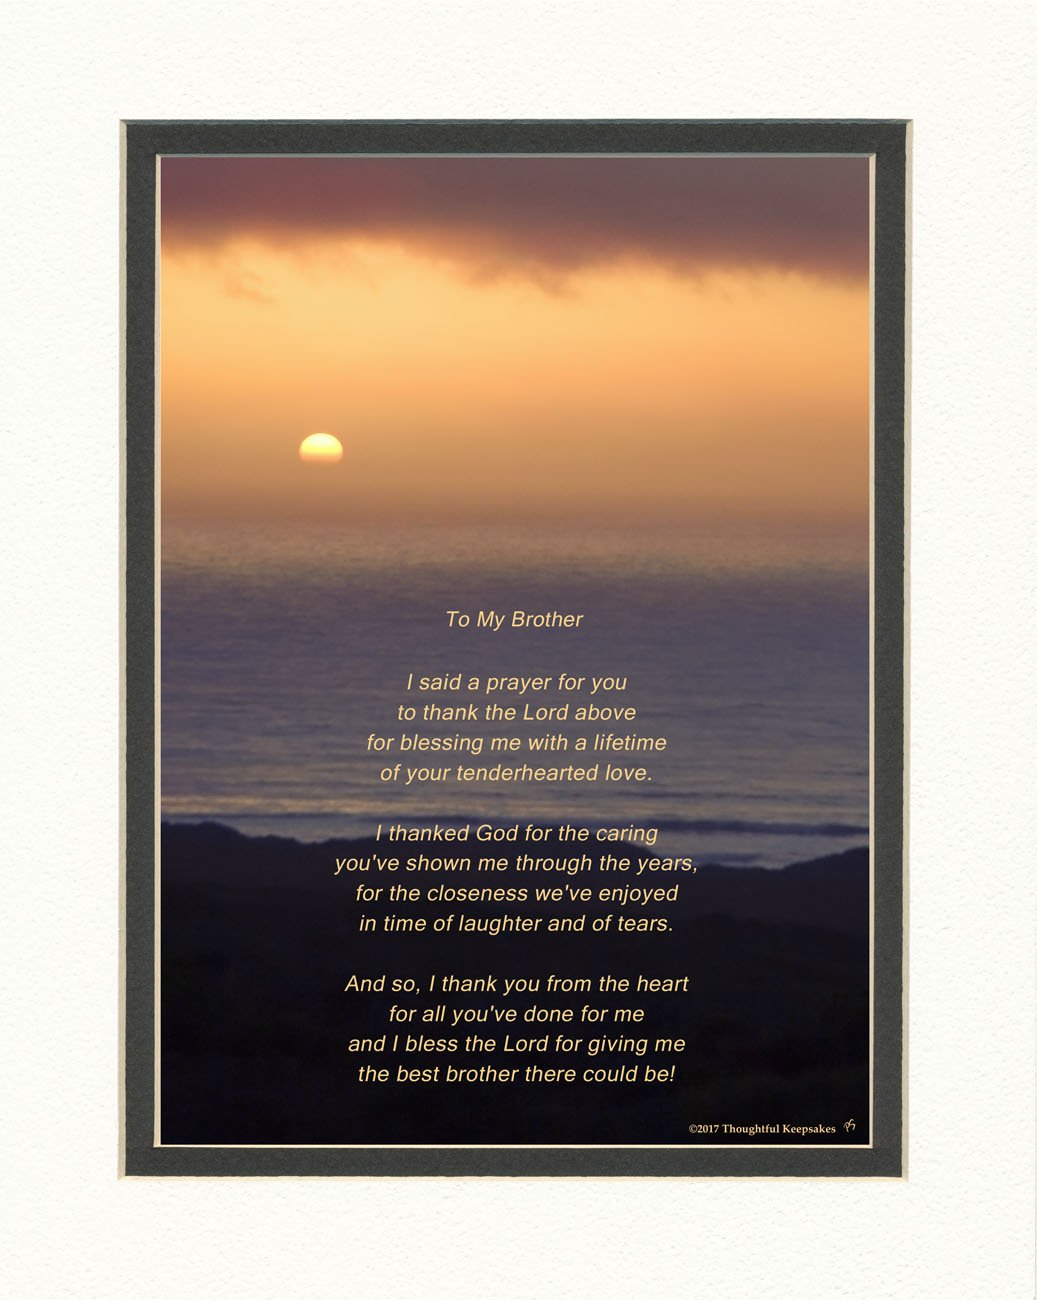 Brother Gift with ''Thank You Prayer for Best Brother'' Poem. Ocean Sunset Photo, 8x10 Double Matted. Special Unique Birthday, Christmas Gifts for Brother